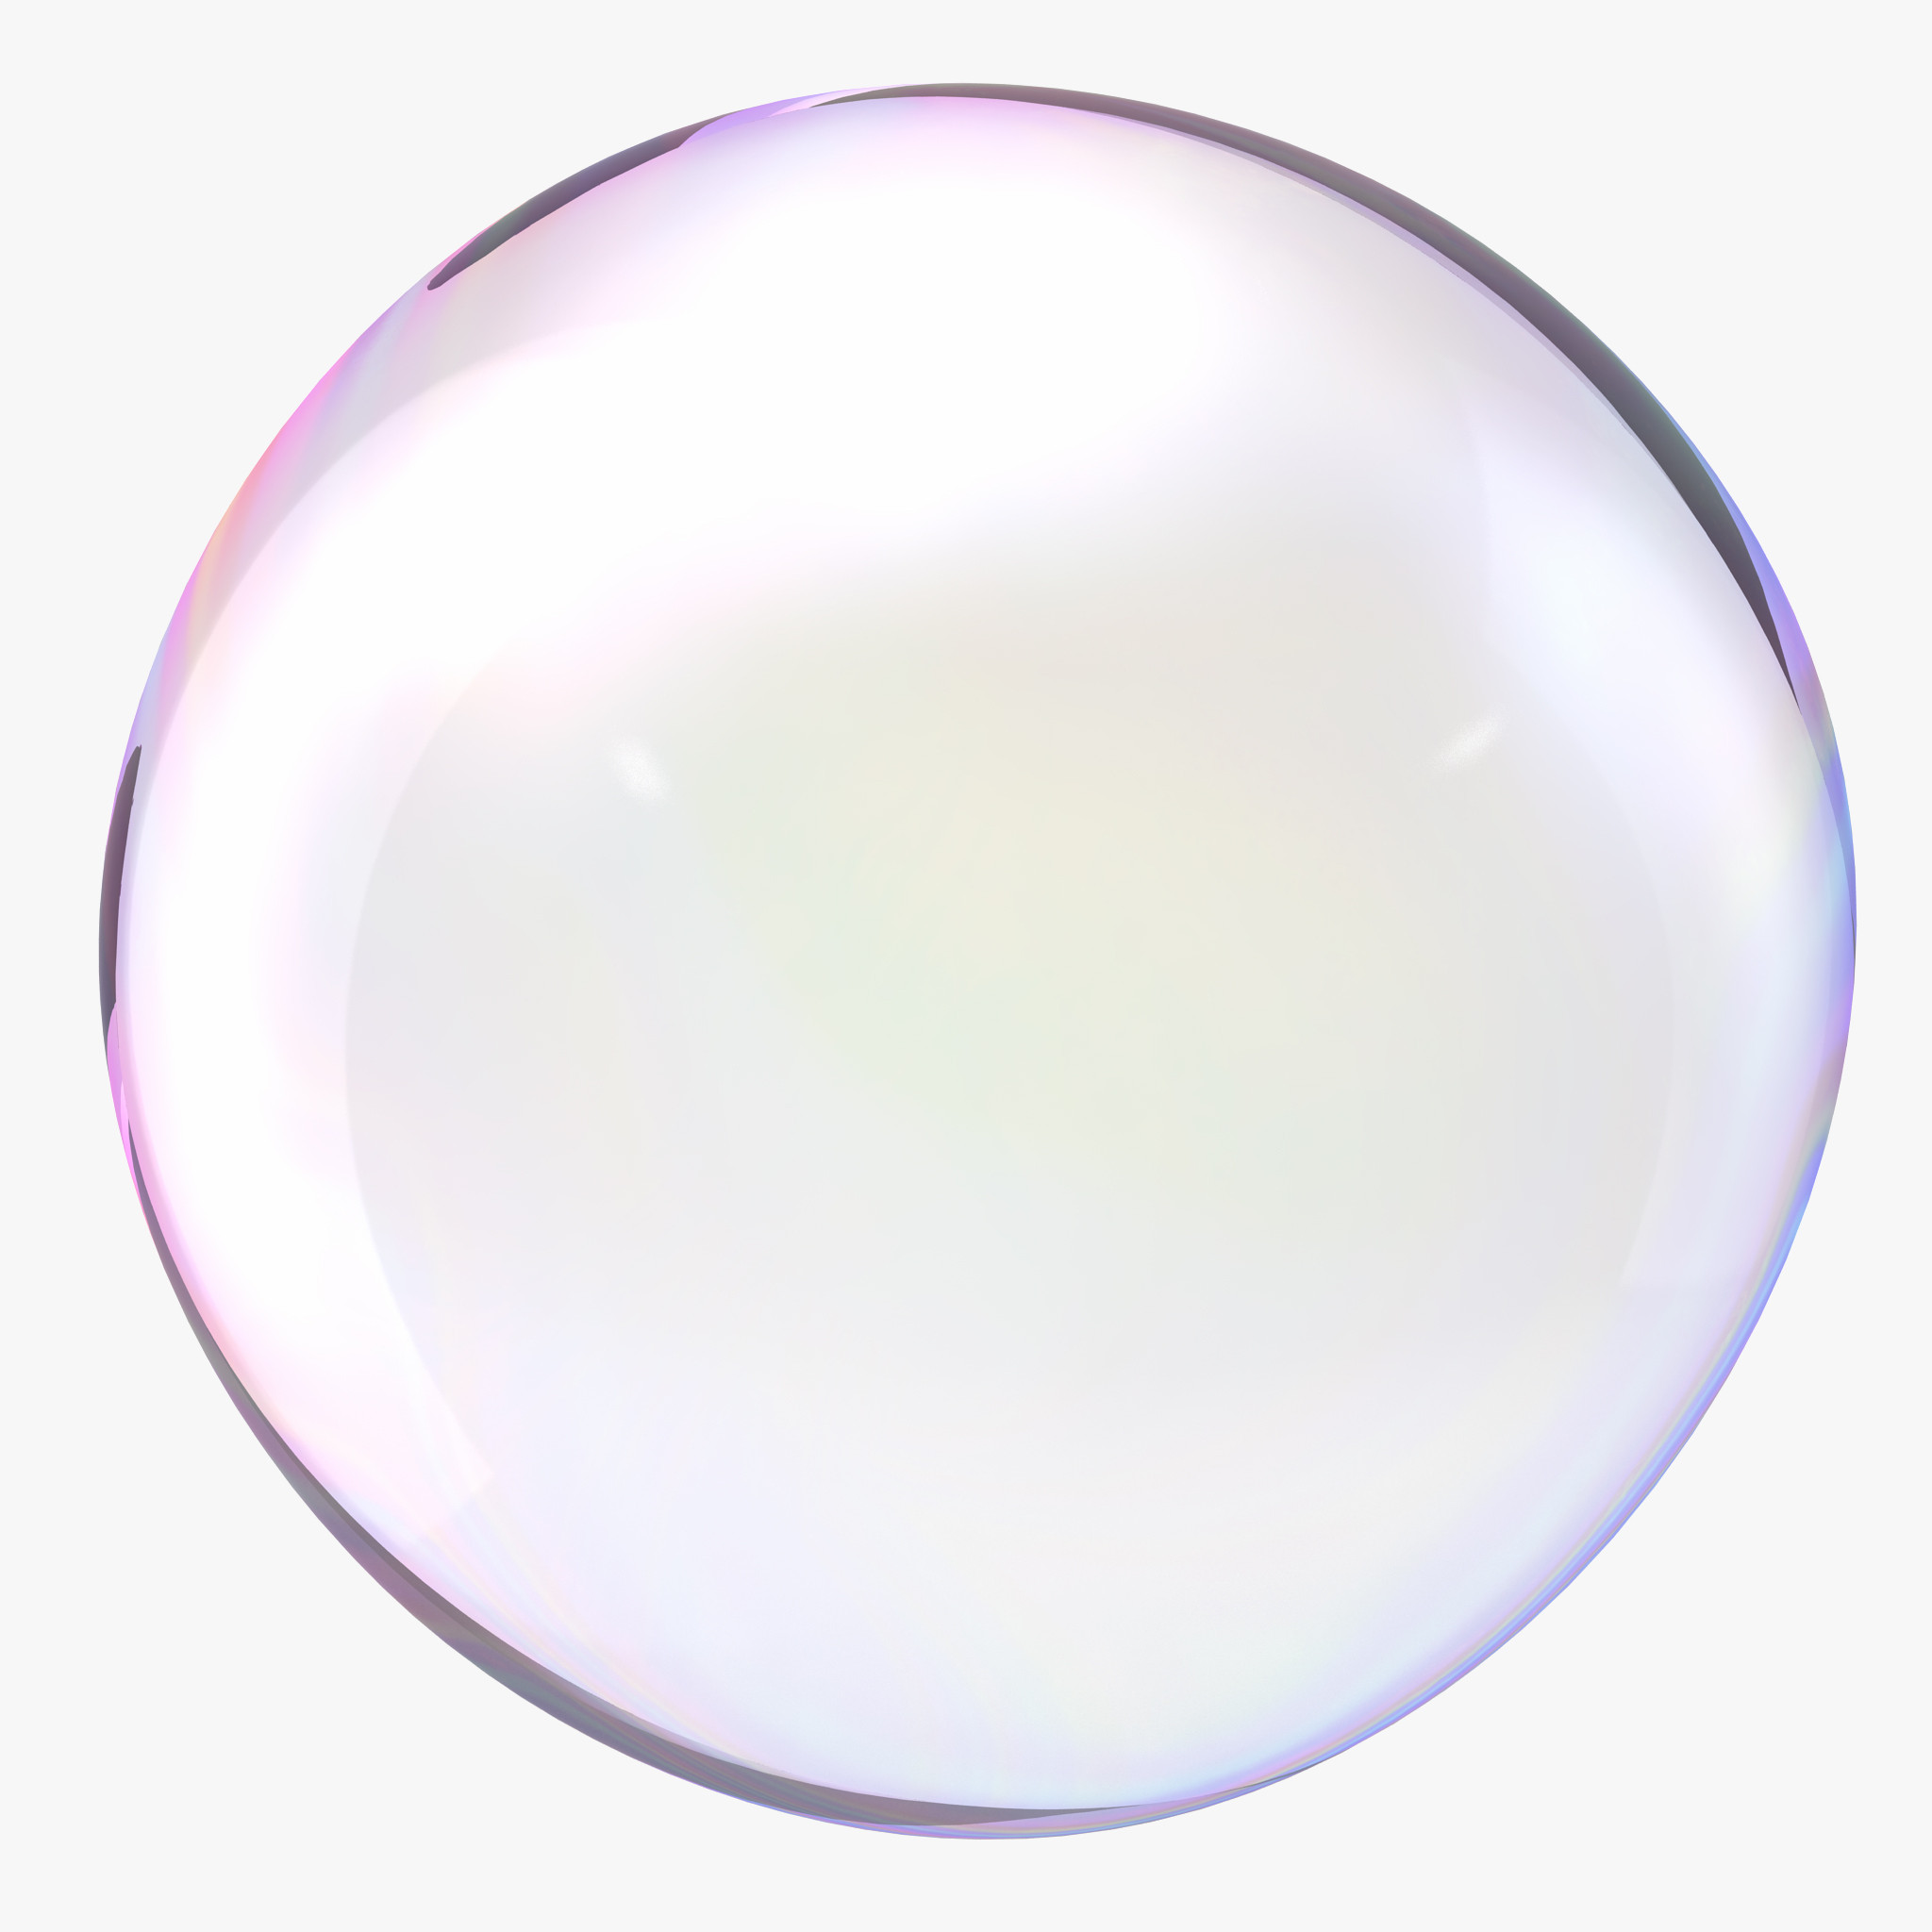 Purple Plain Bubble 597.67 Kb